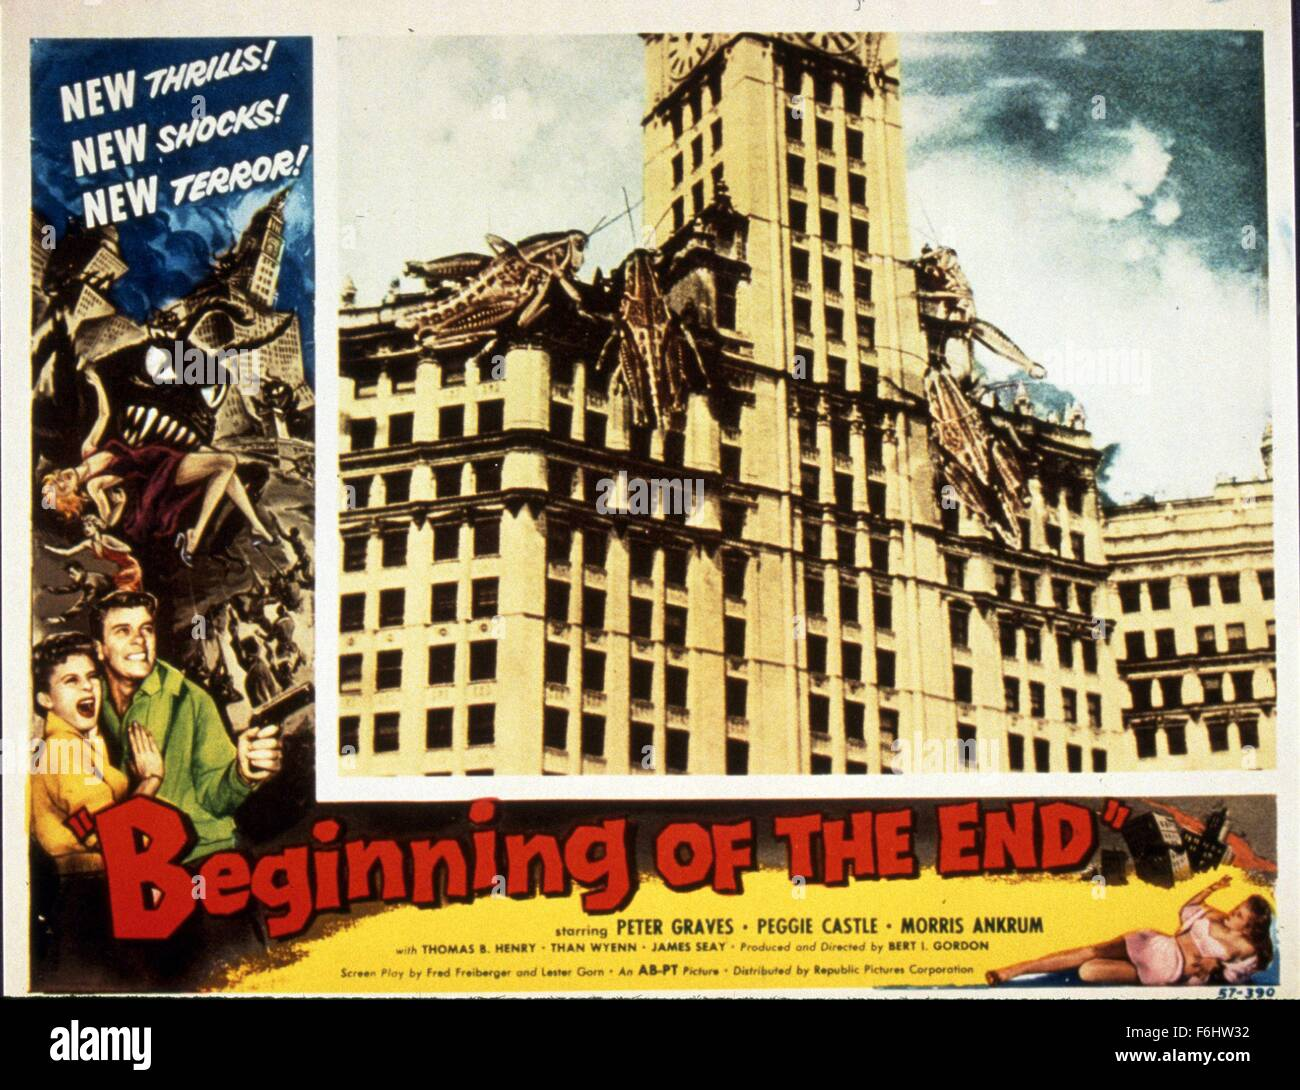 Beginning of the end Peter Graves Horror movie poster